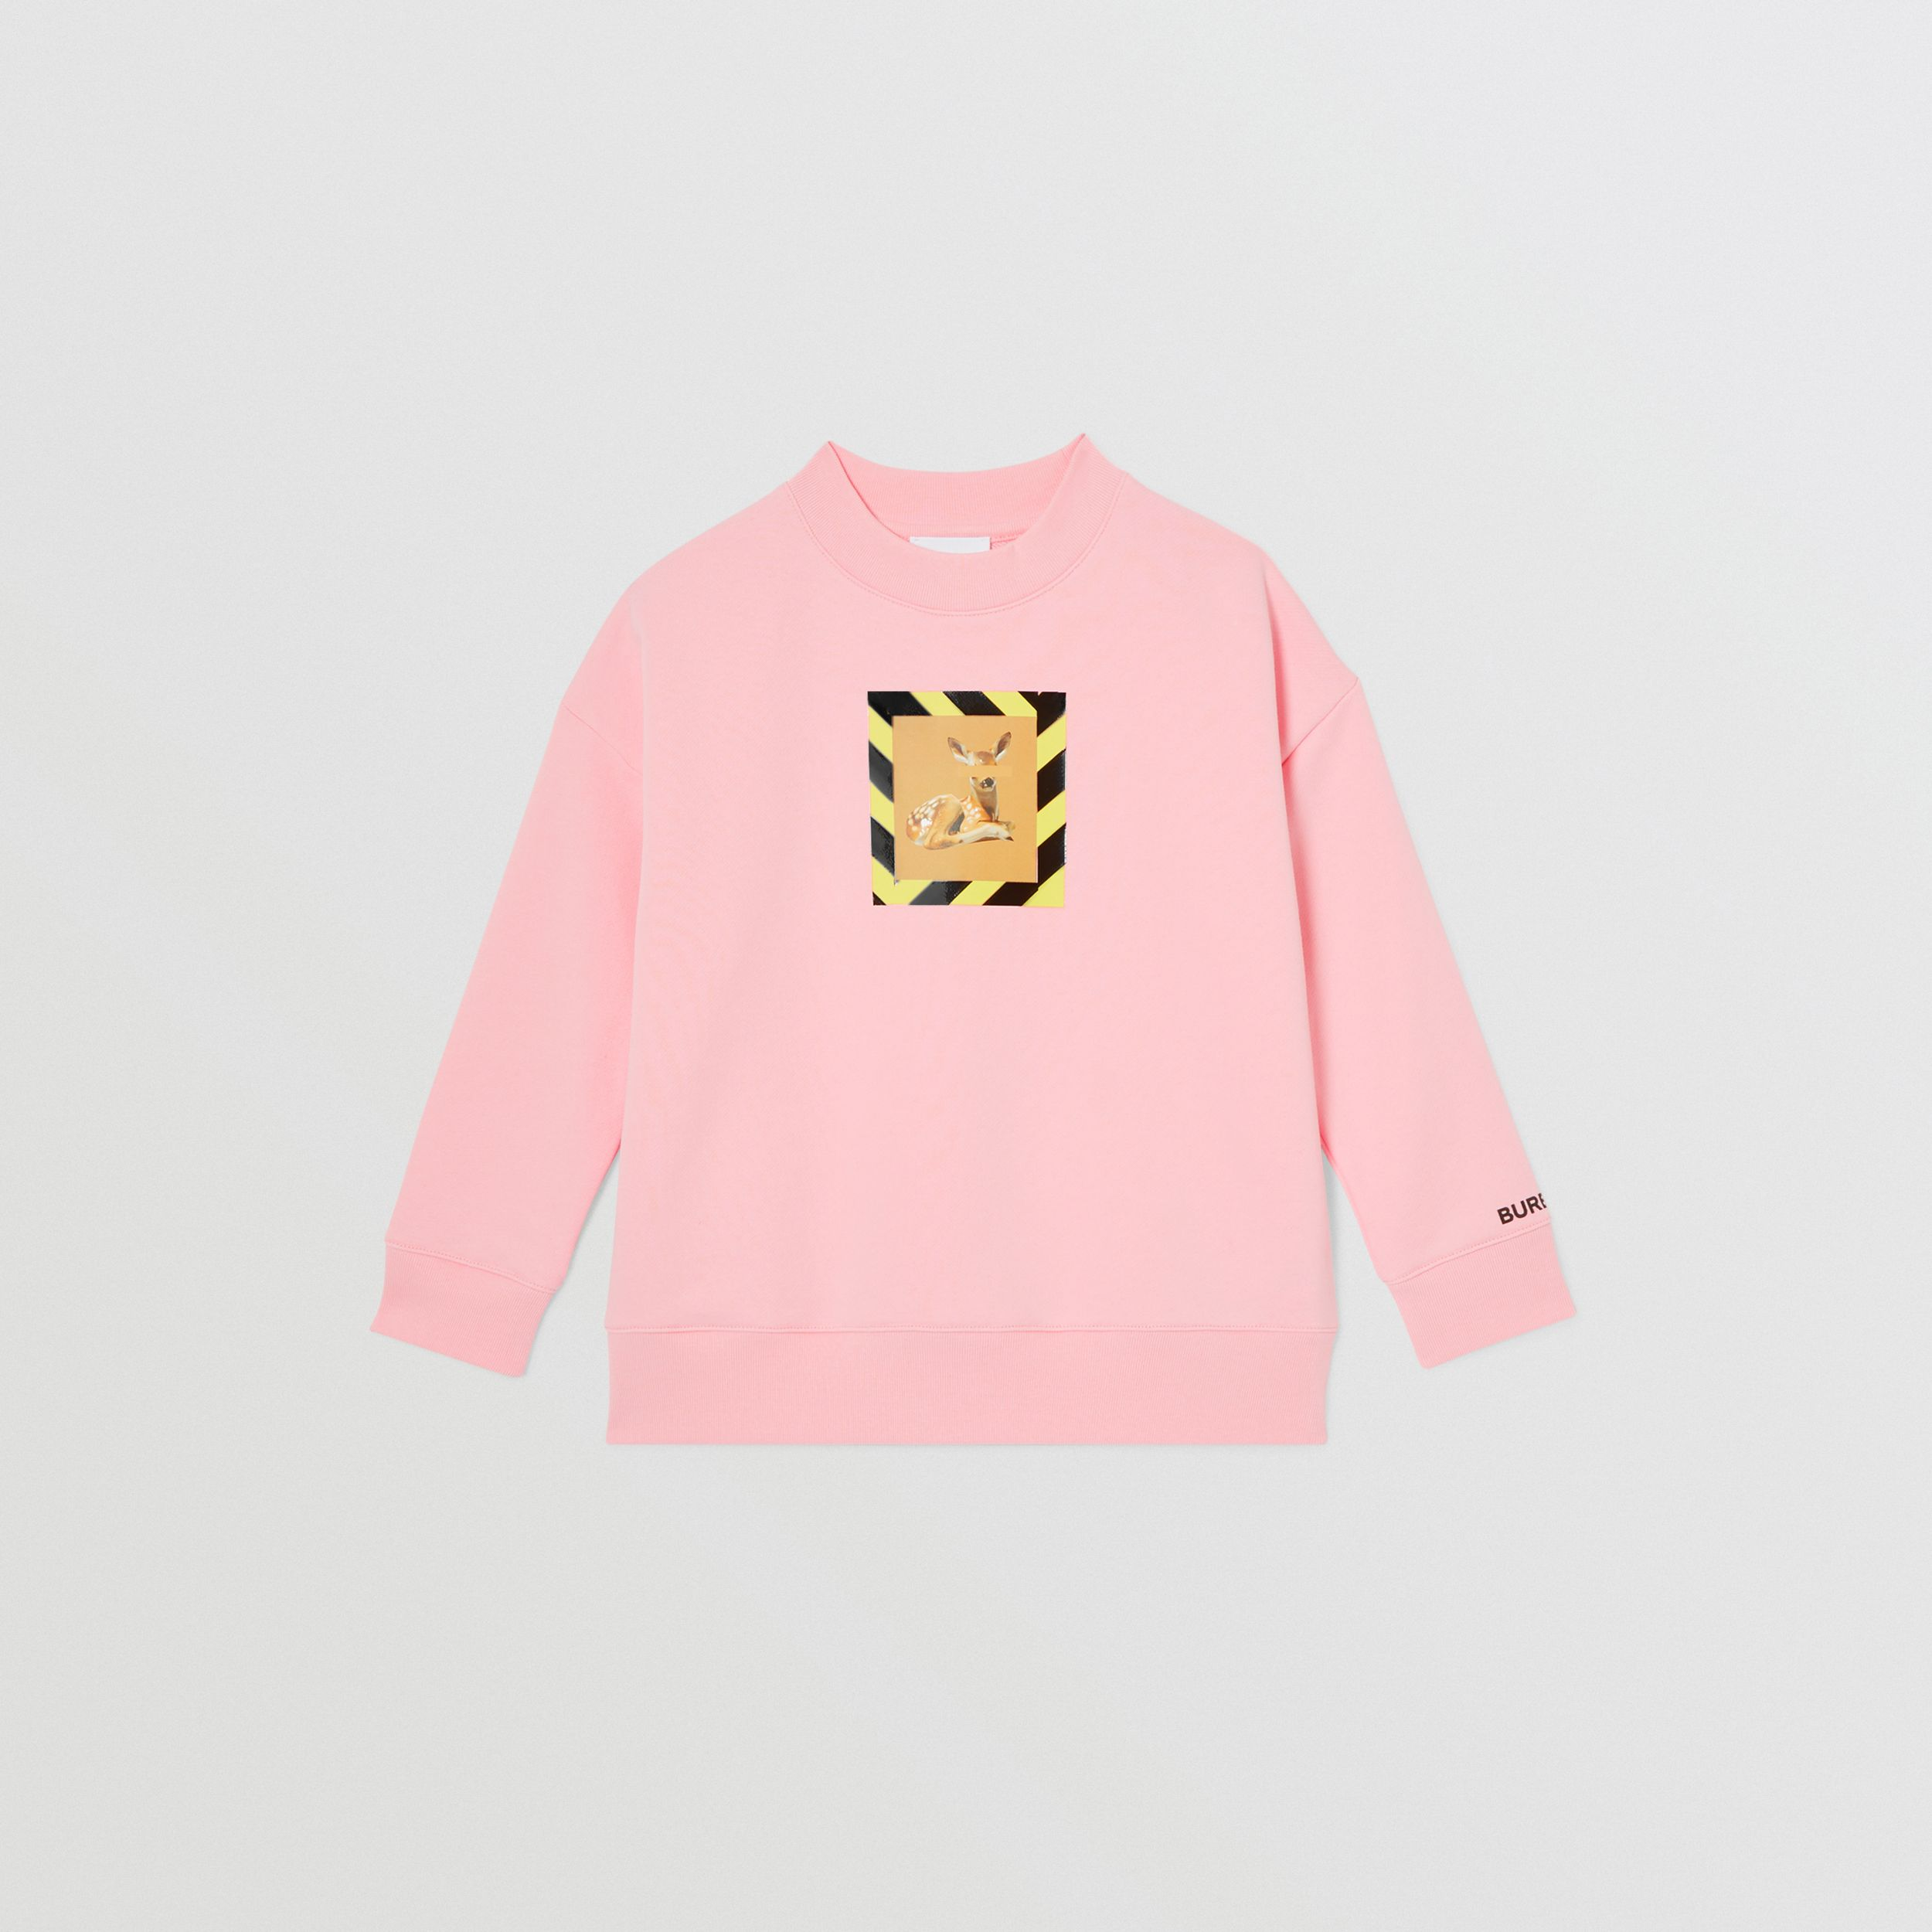 Deer Print Cotton Sweatshirt in Candy Pink | Burberry - 1